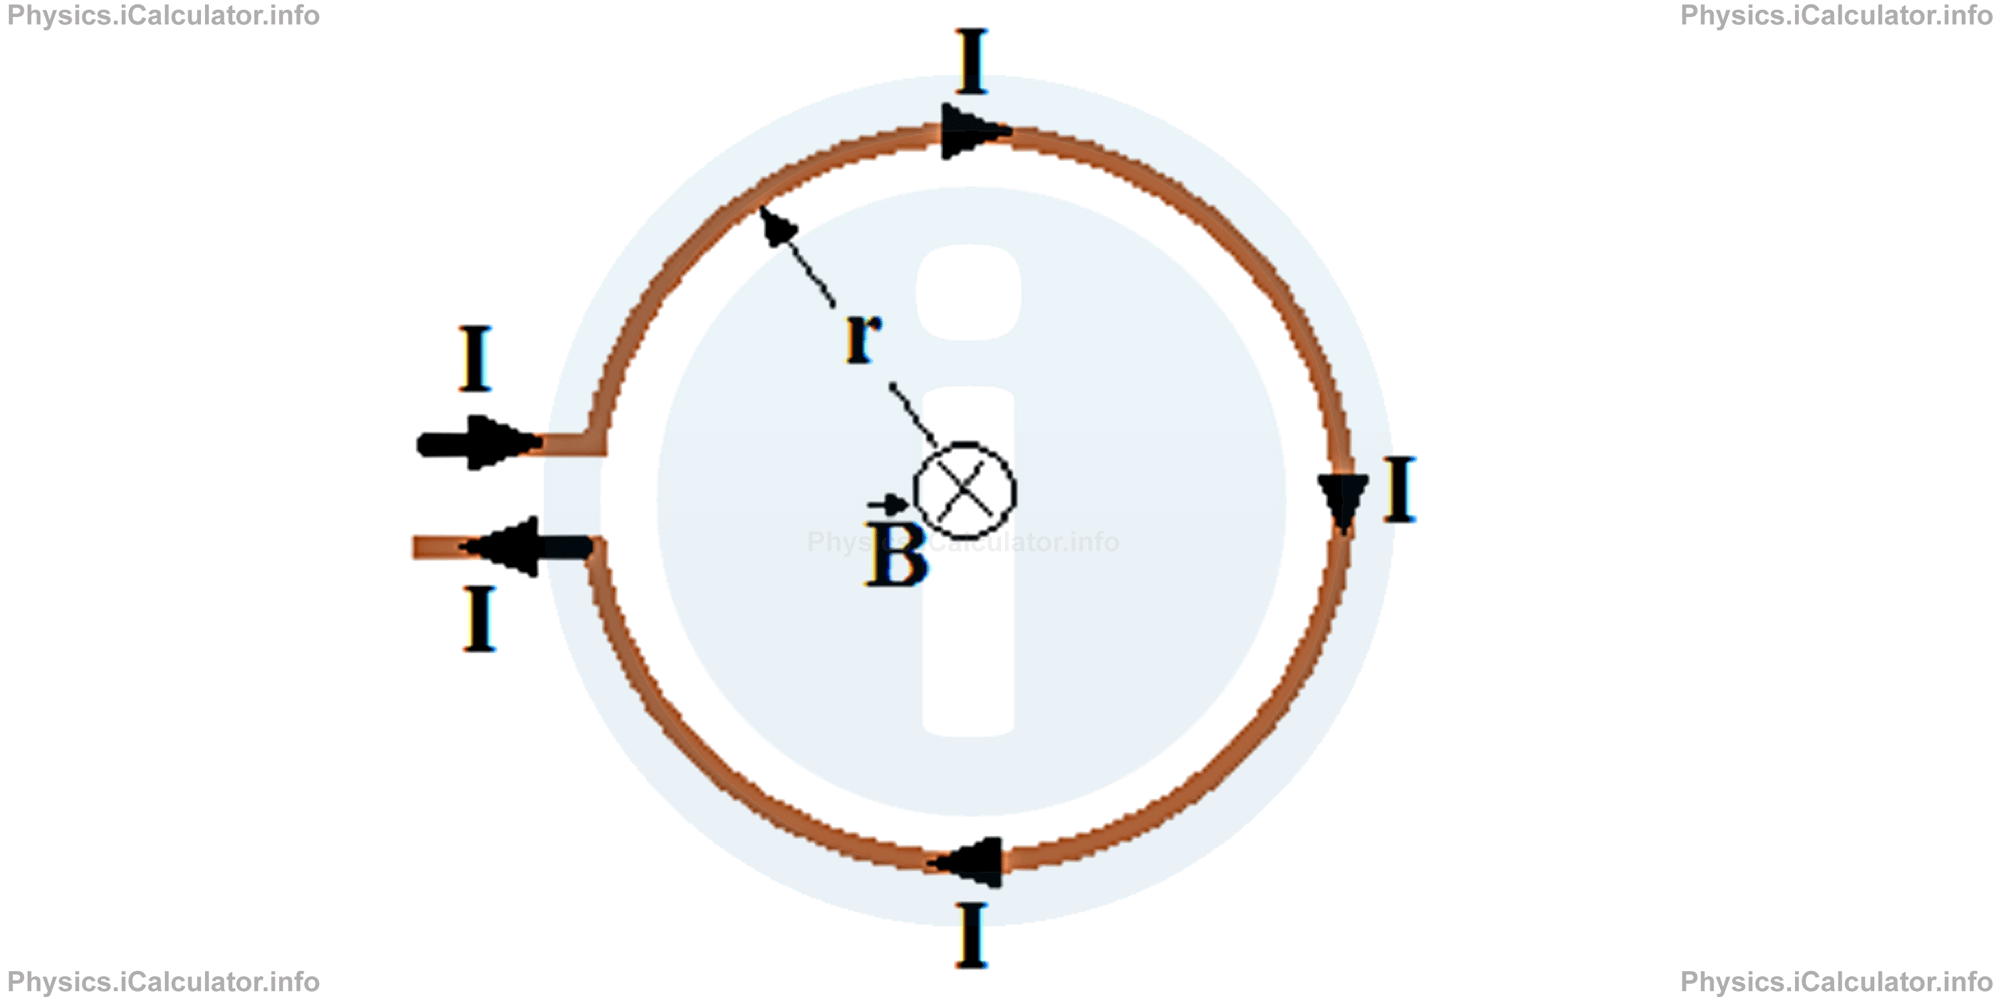 Physics Tutorials: This image provides visual information for the physics tutorial Magnetic Field Produced by Electric Currents